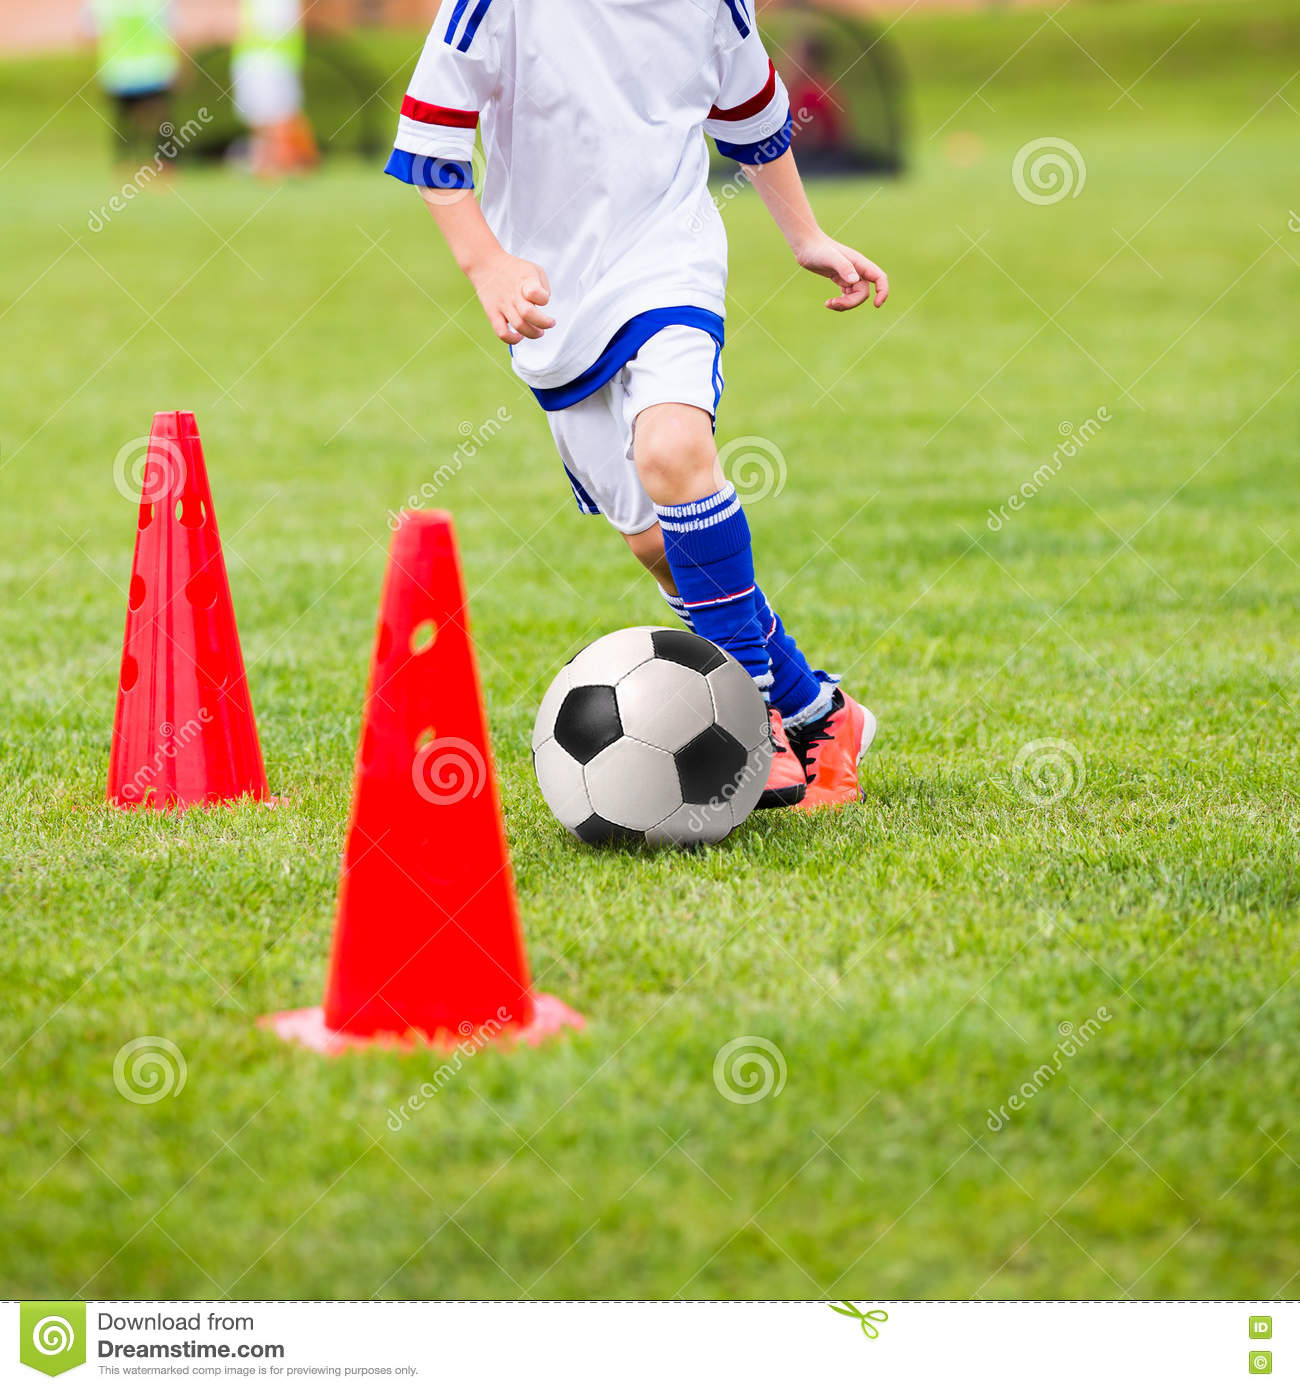 Kid playing soccer. Training football session for children. Boys is training with soccer ball and bollards on the field